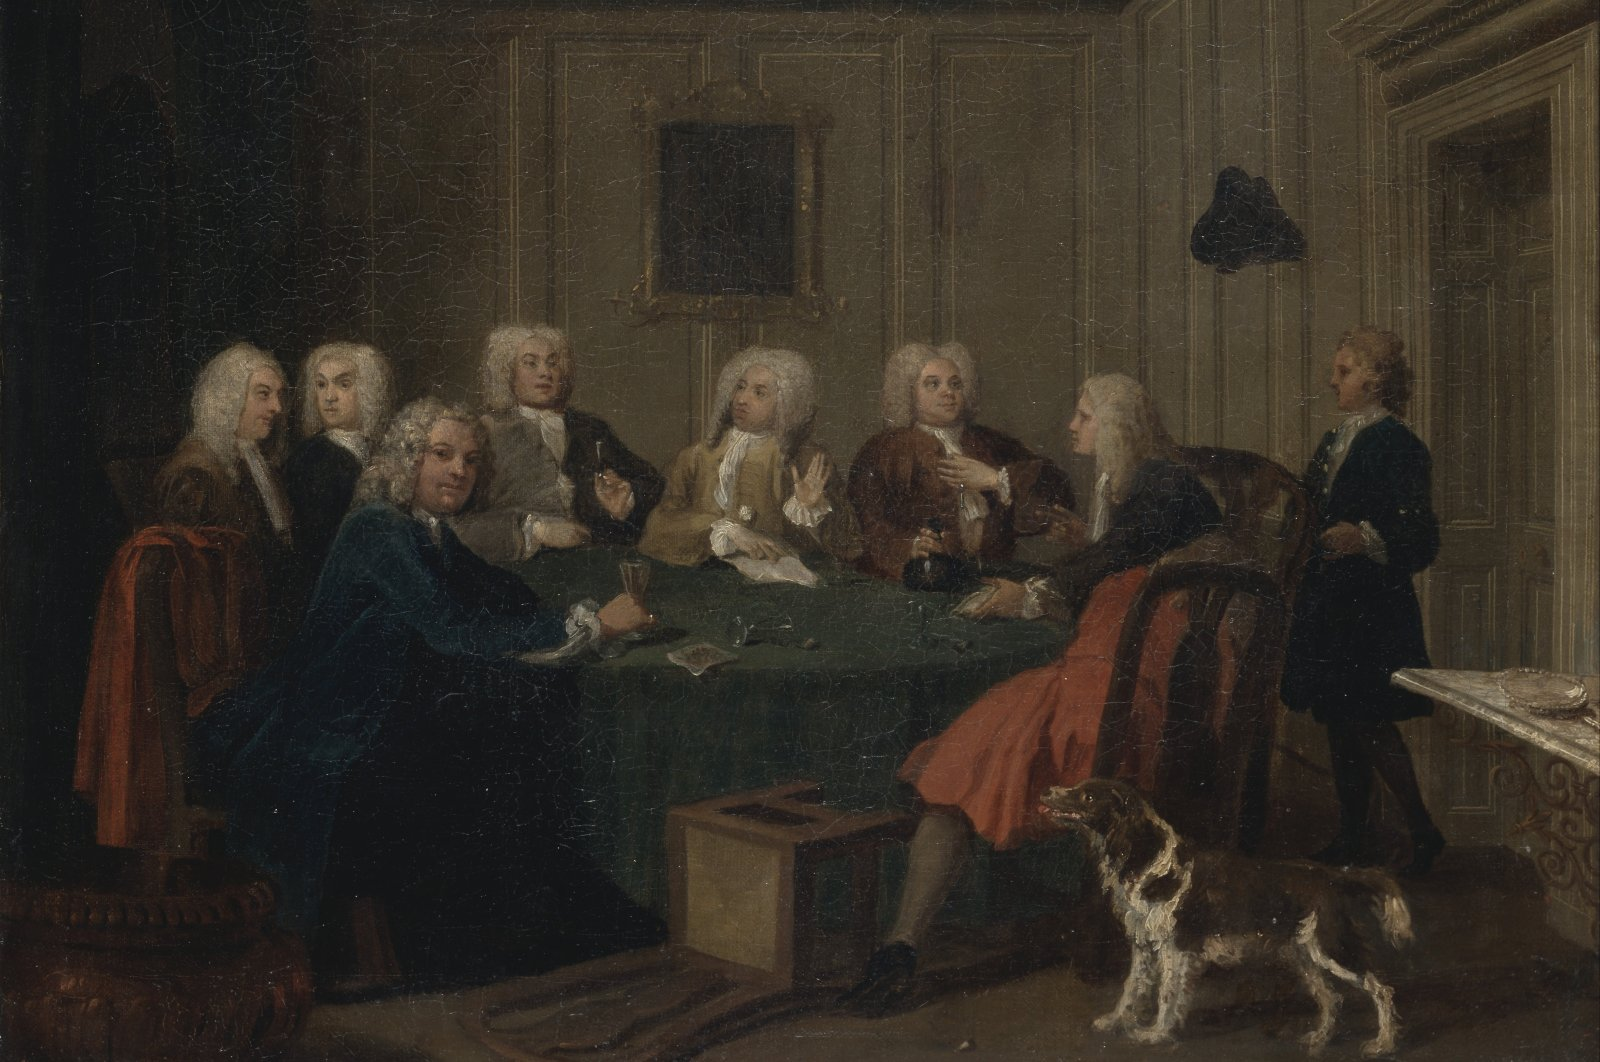 A Club of Gentlemen by Joseph Highmore (1692–1780), oil on canvas, circa 1730. (via WIKIMEDIA COMMONS)